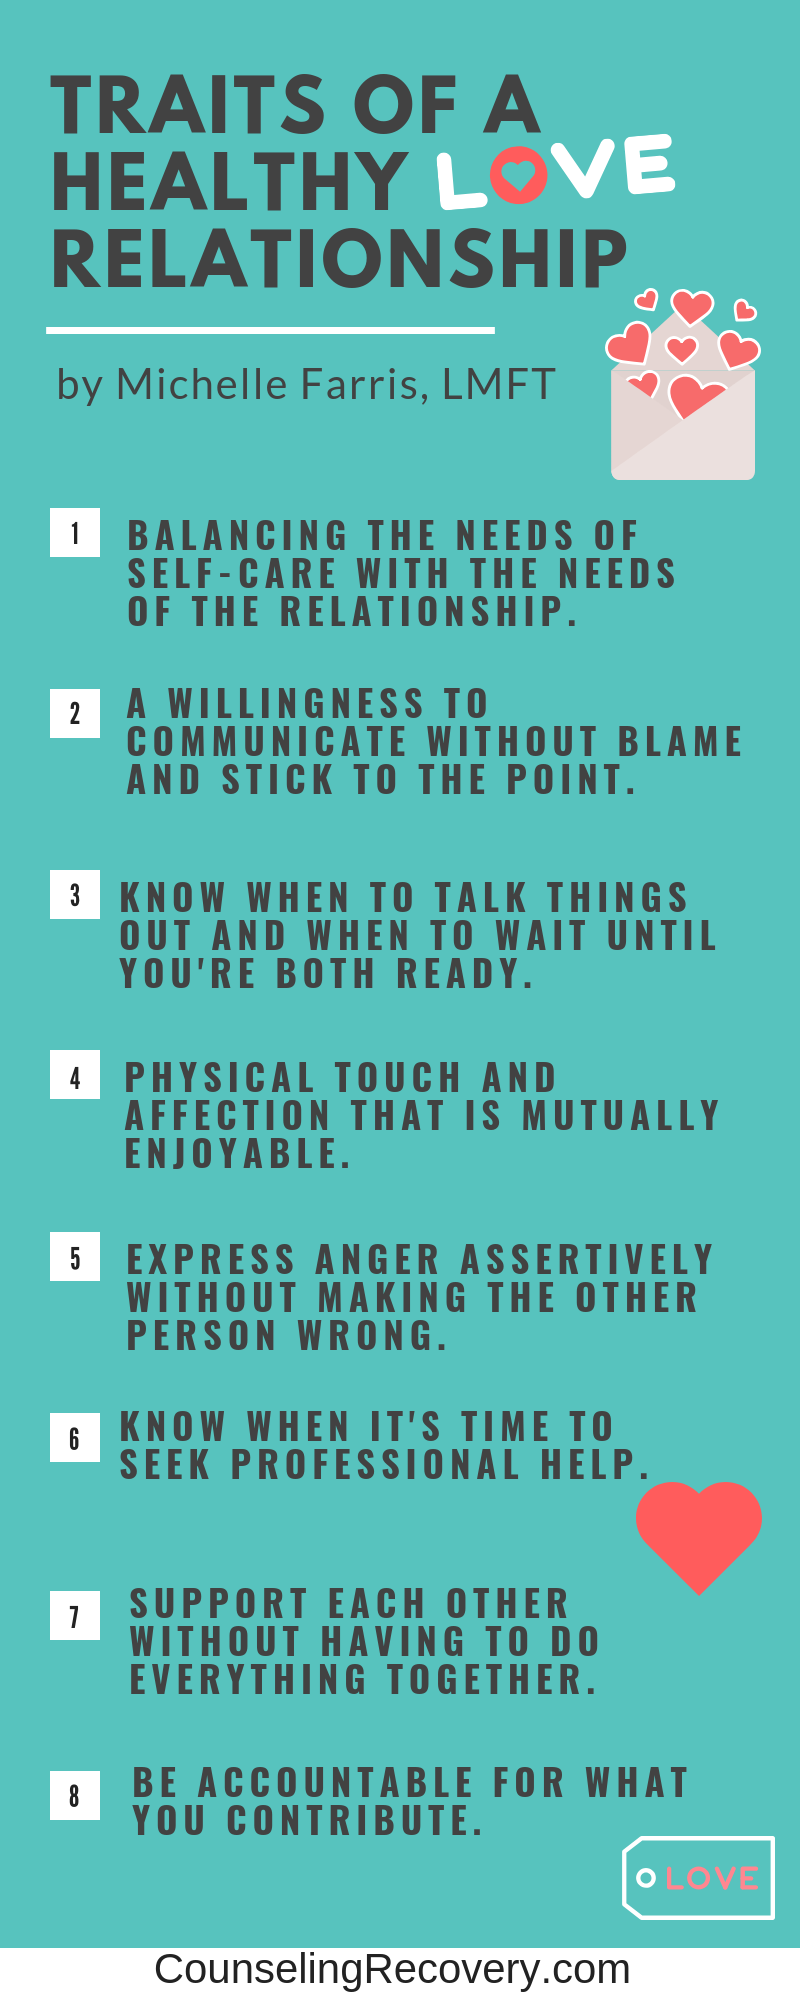 Traits of a healthy realtionship